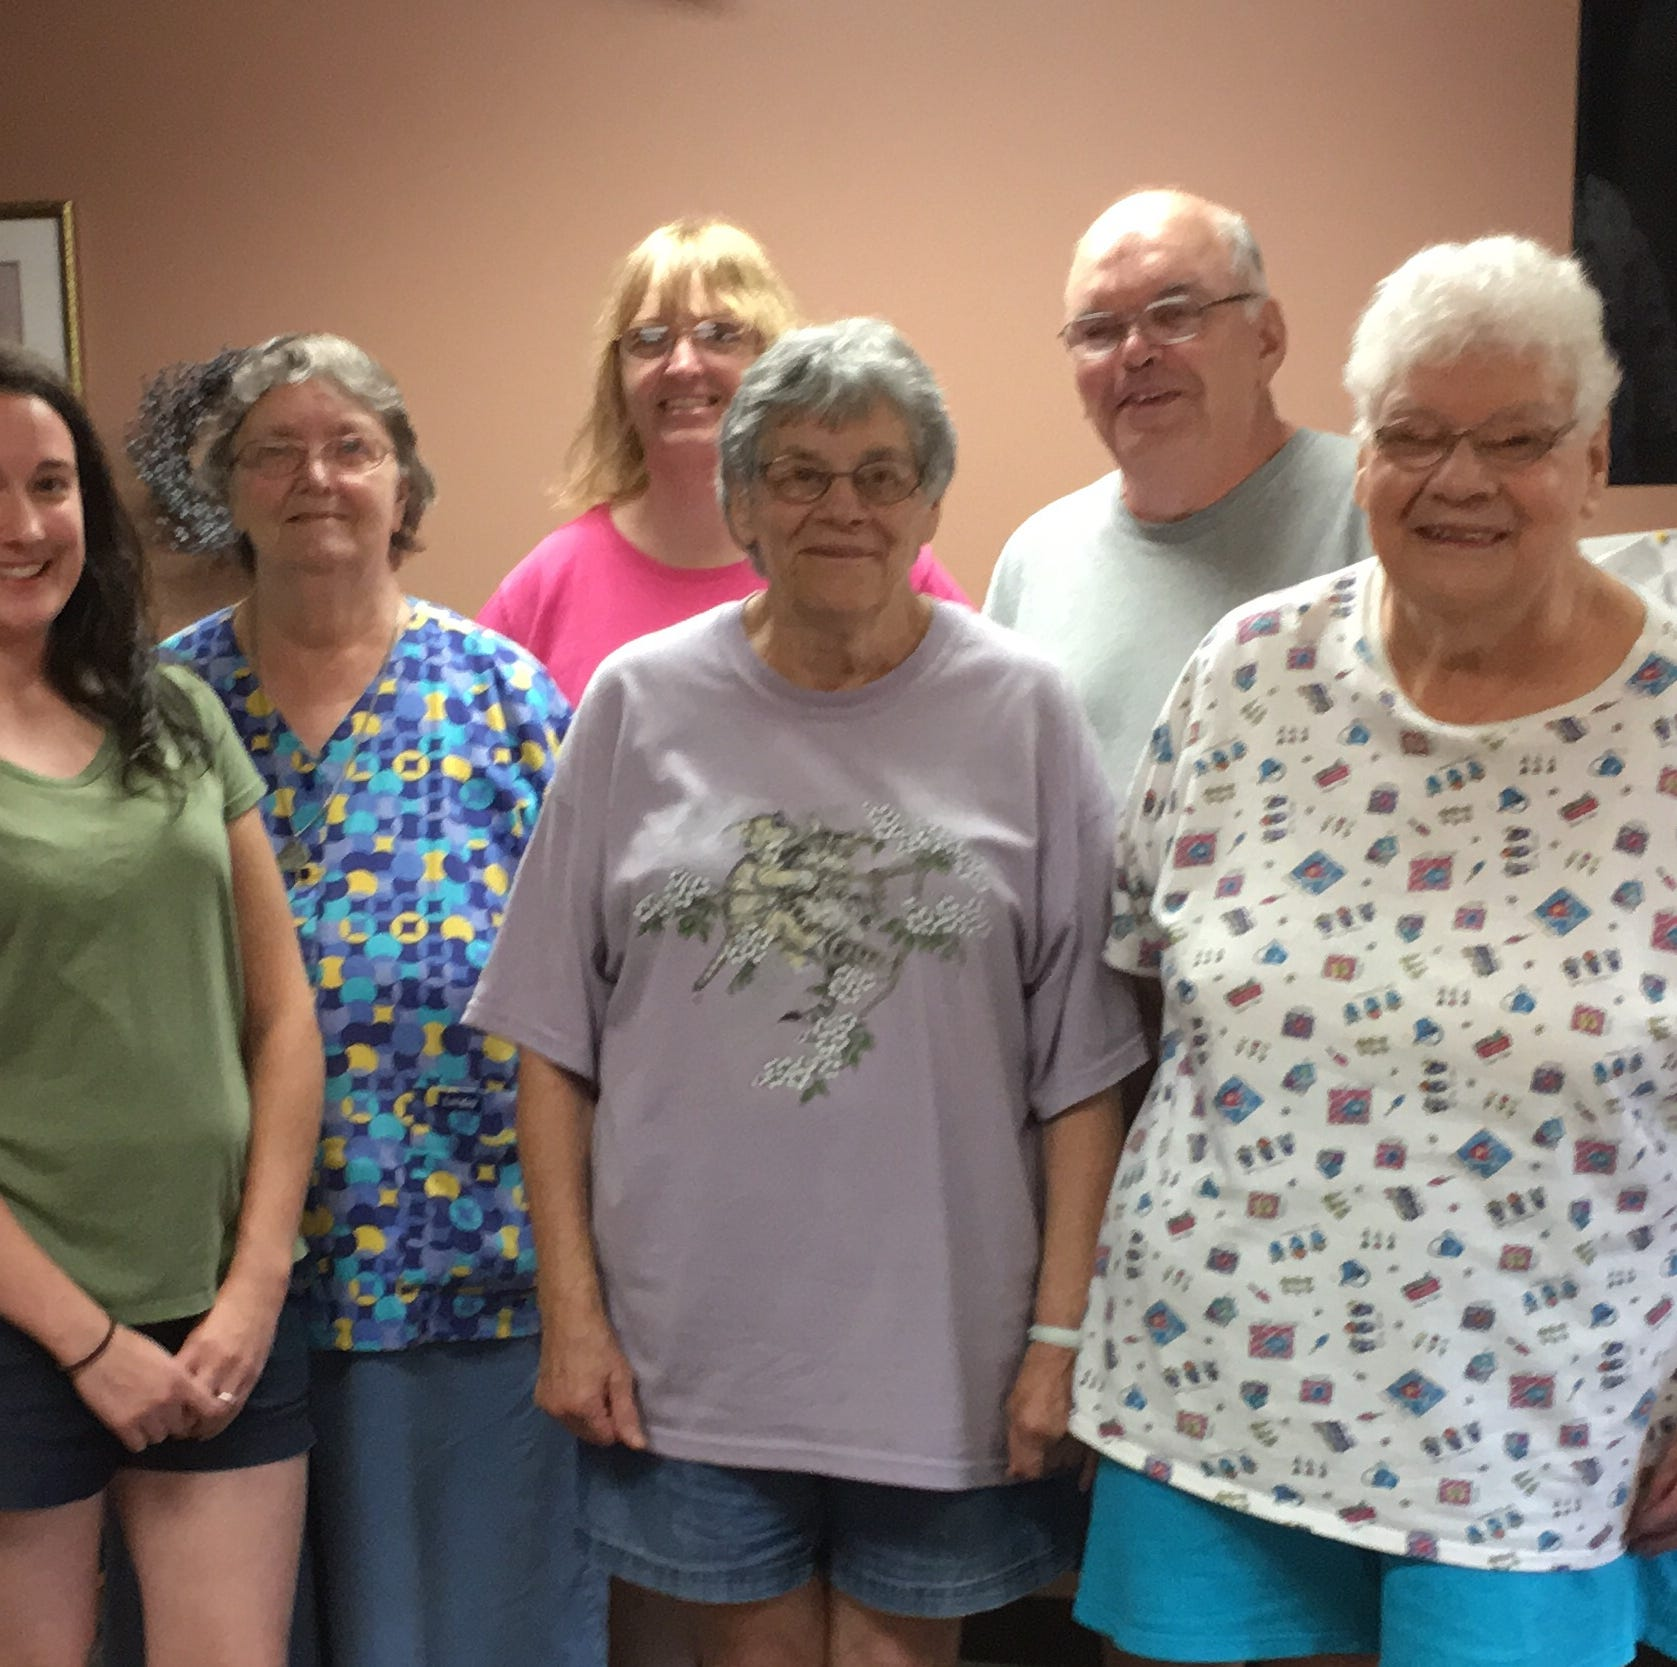 Acorn Apartments offers volunteer a chance to help others, connect with community